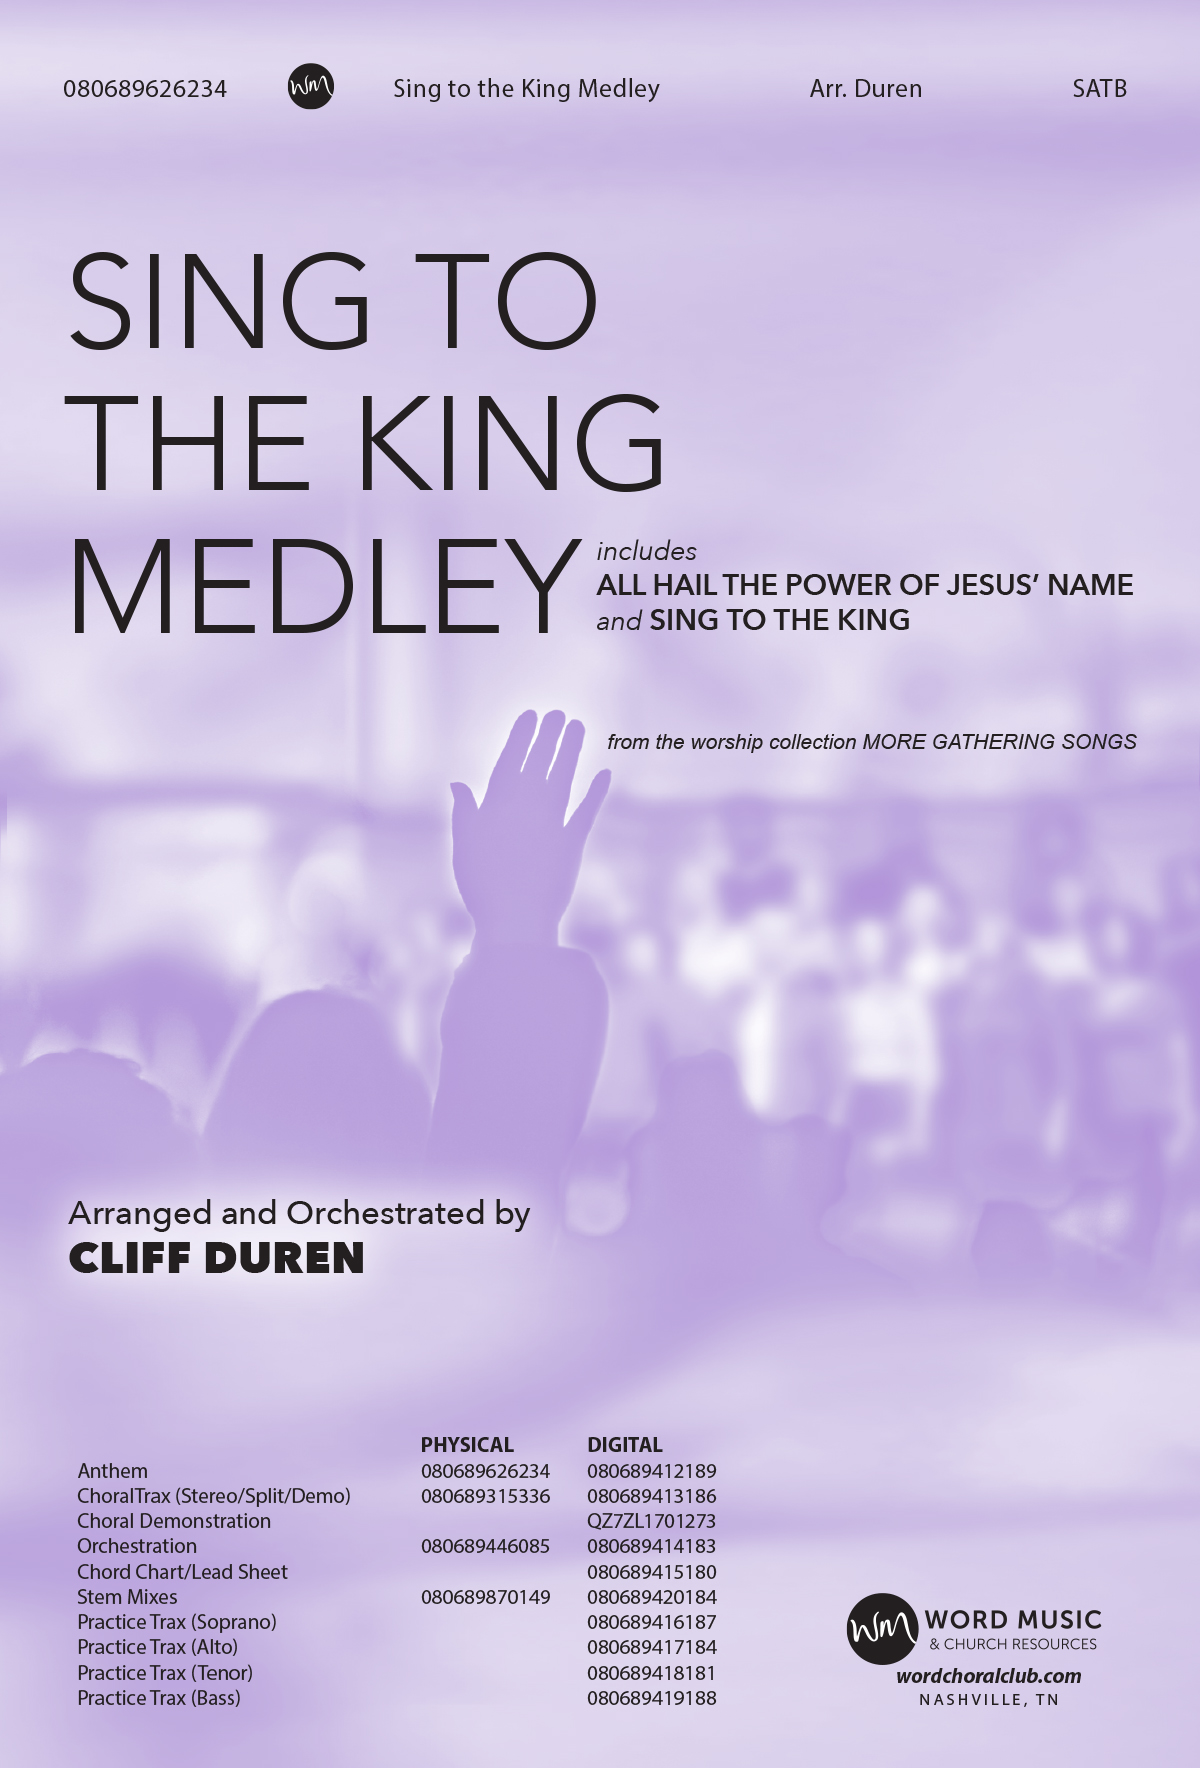 Sing to the King Medley